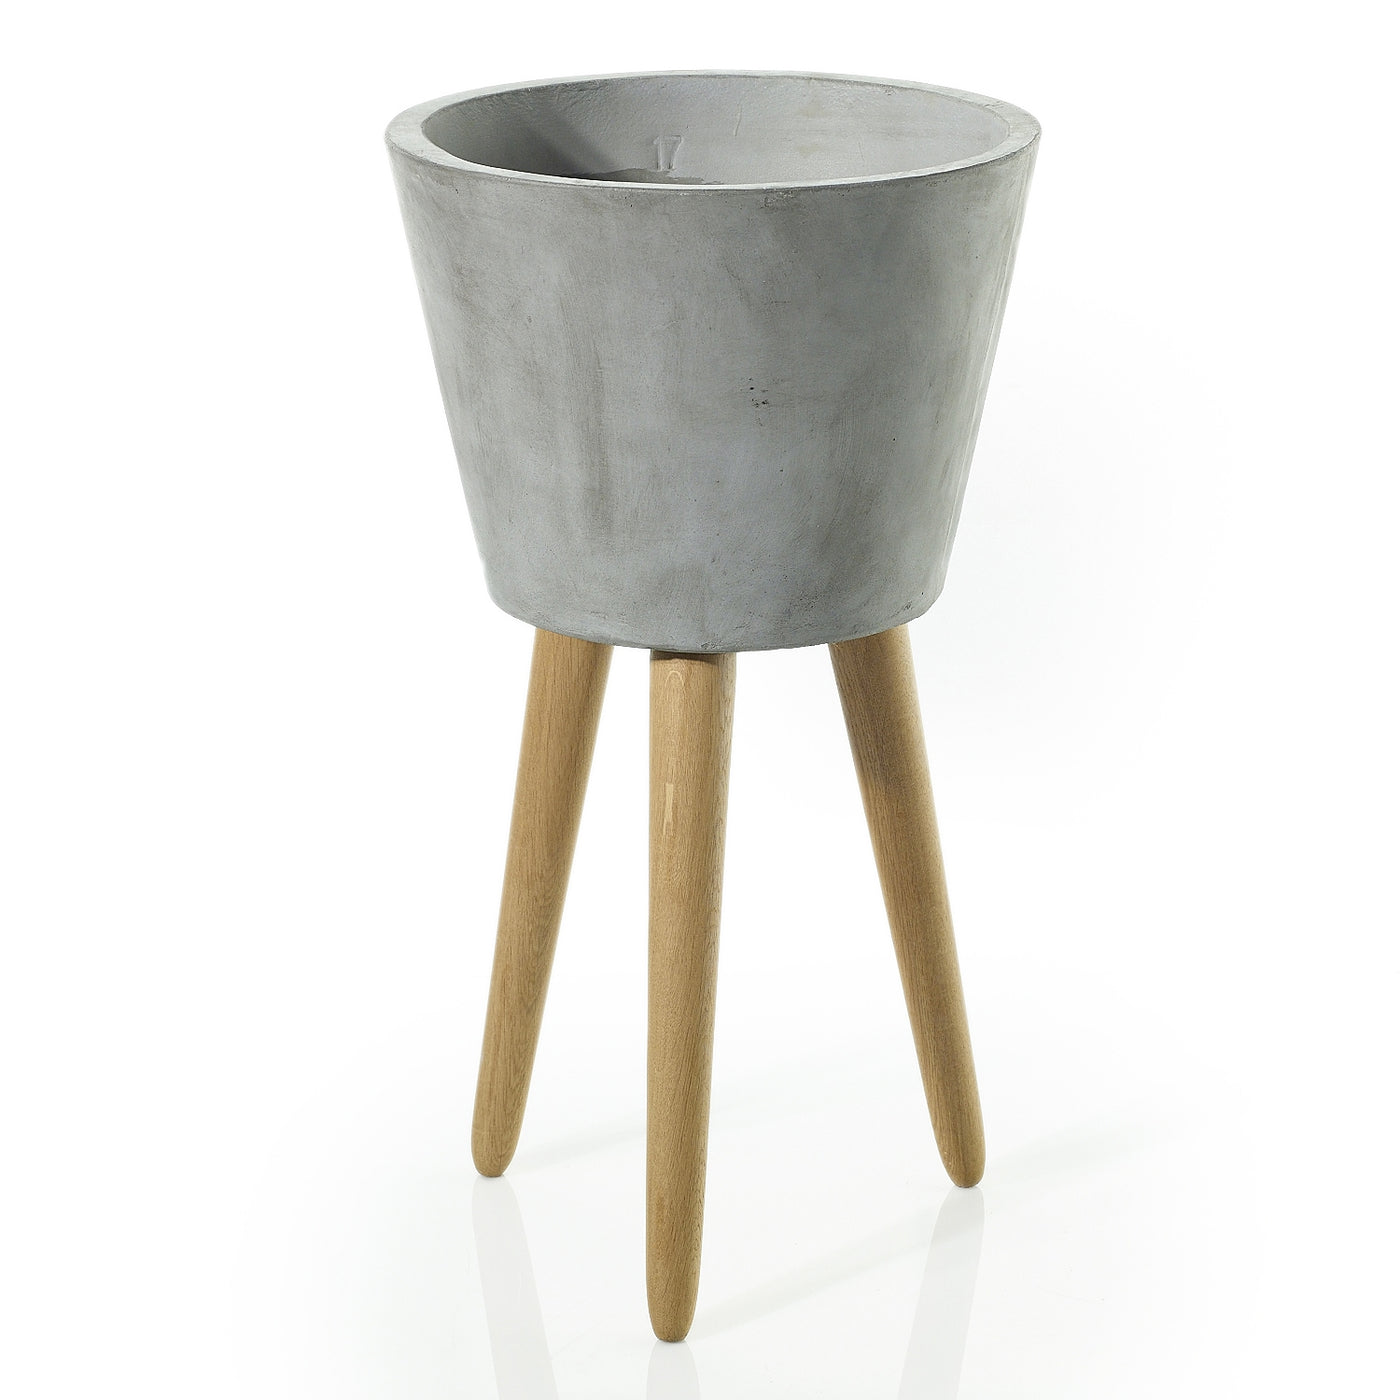 Concrete & Wood Elevated Planters